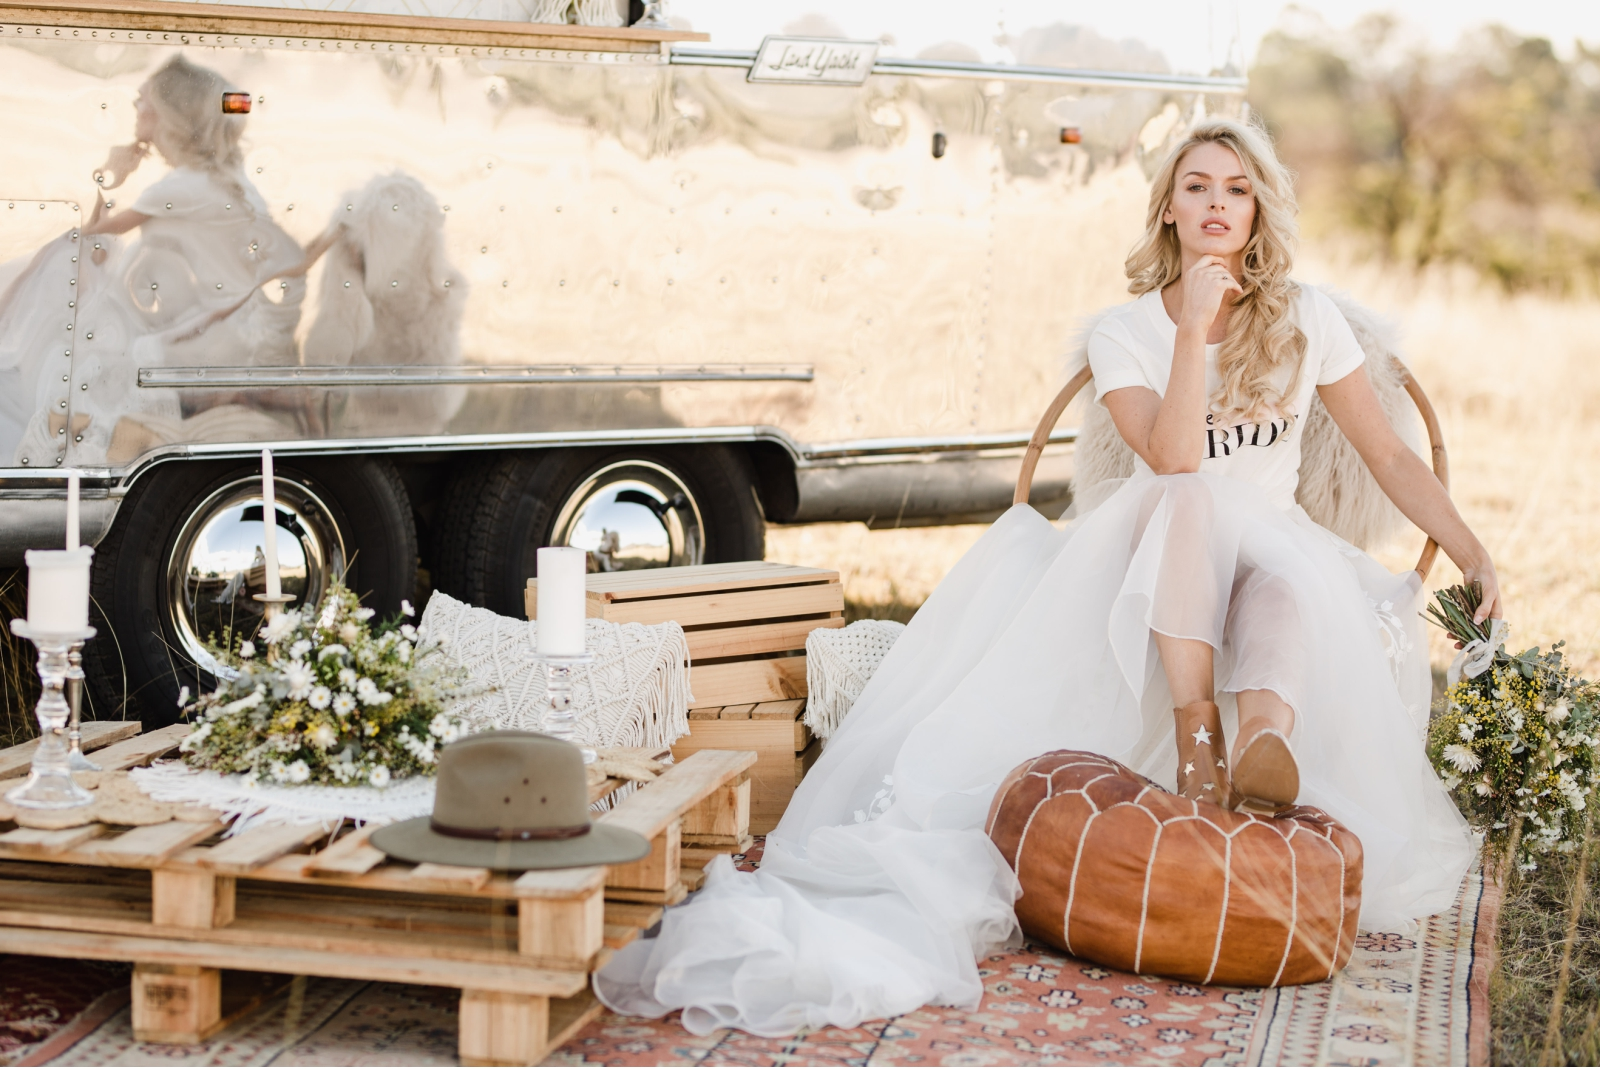 hunter-valley-wedding-planner-styled-shoot-the-airstream-social-broke-nsw